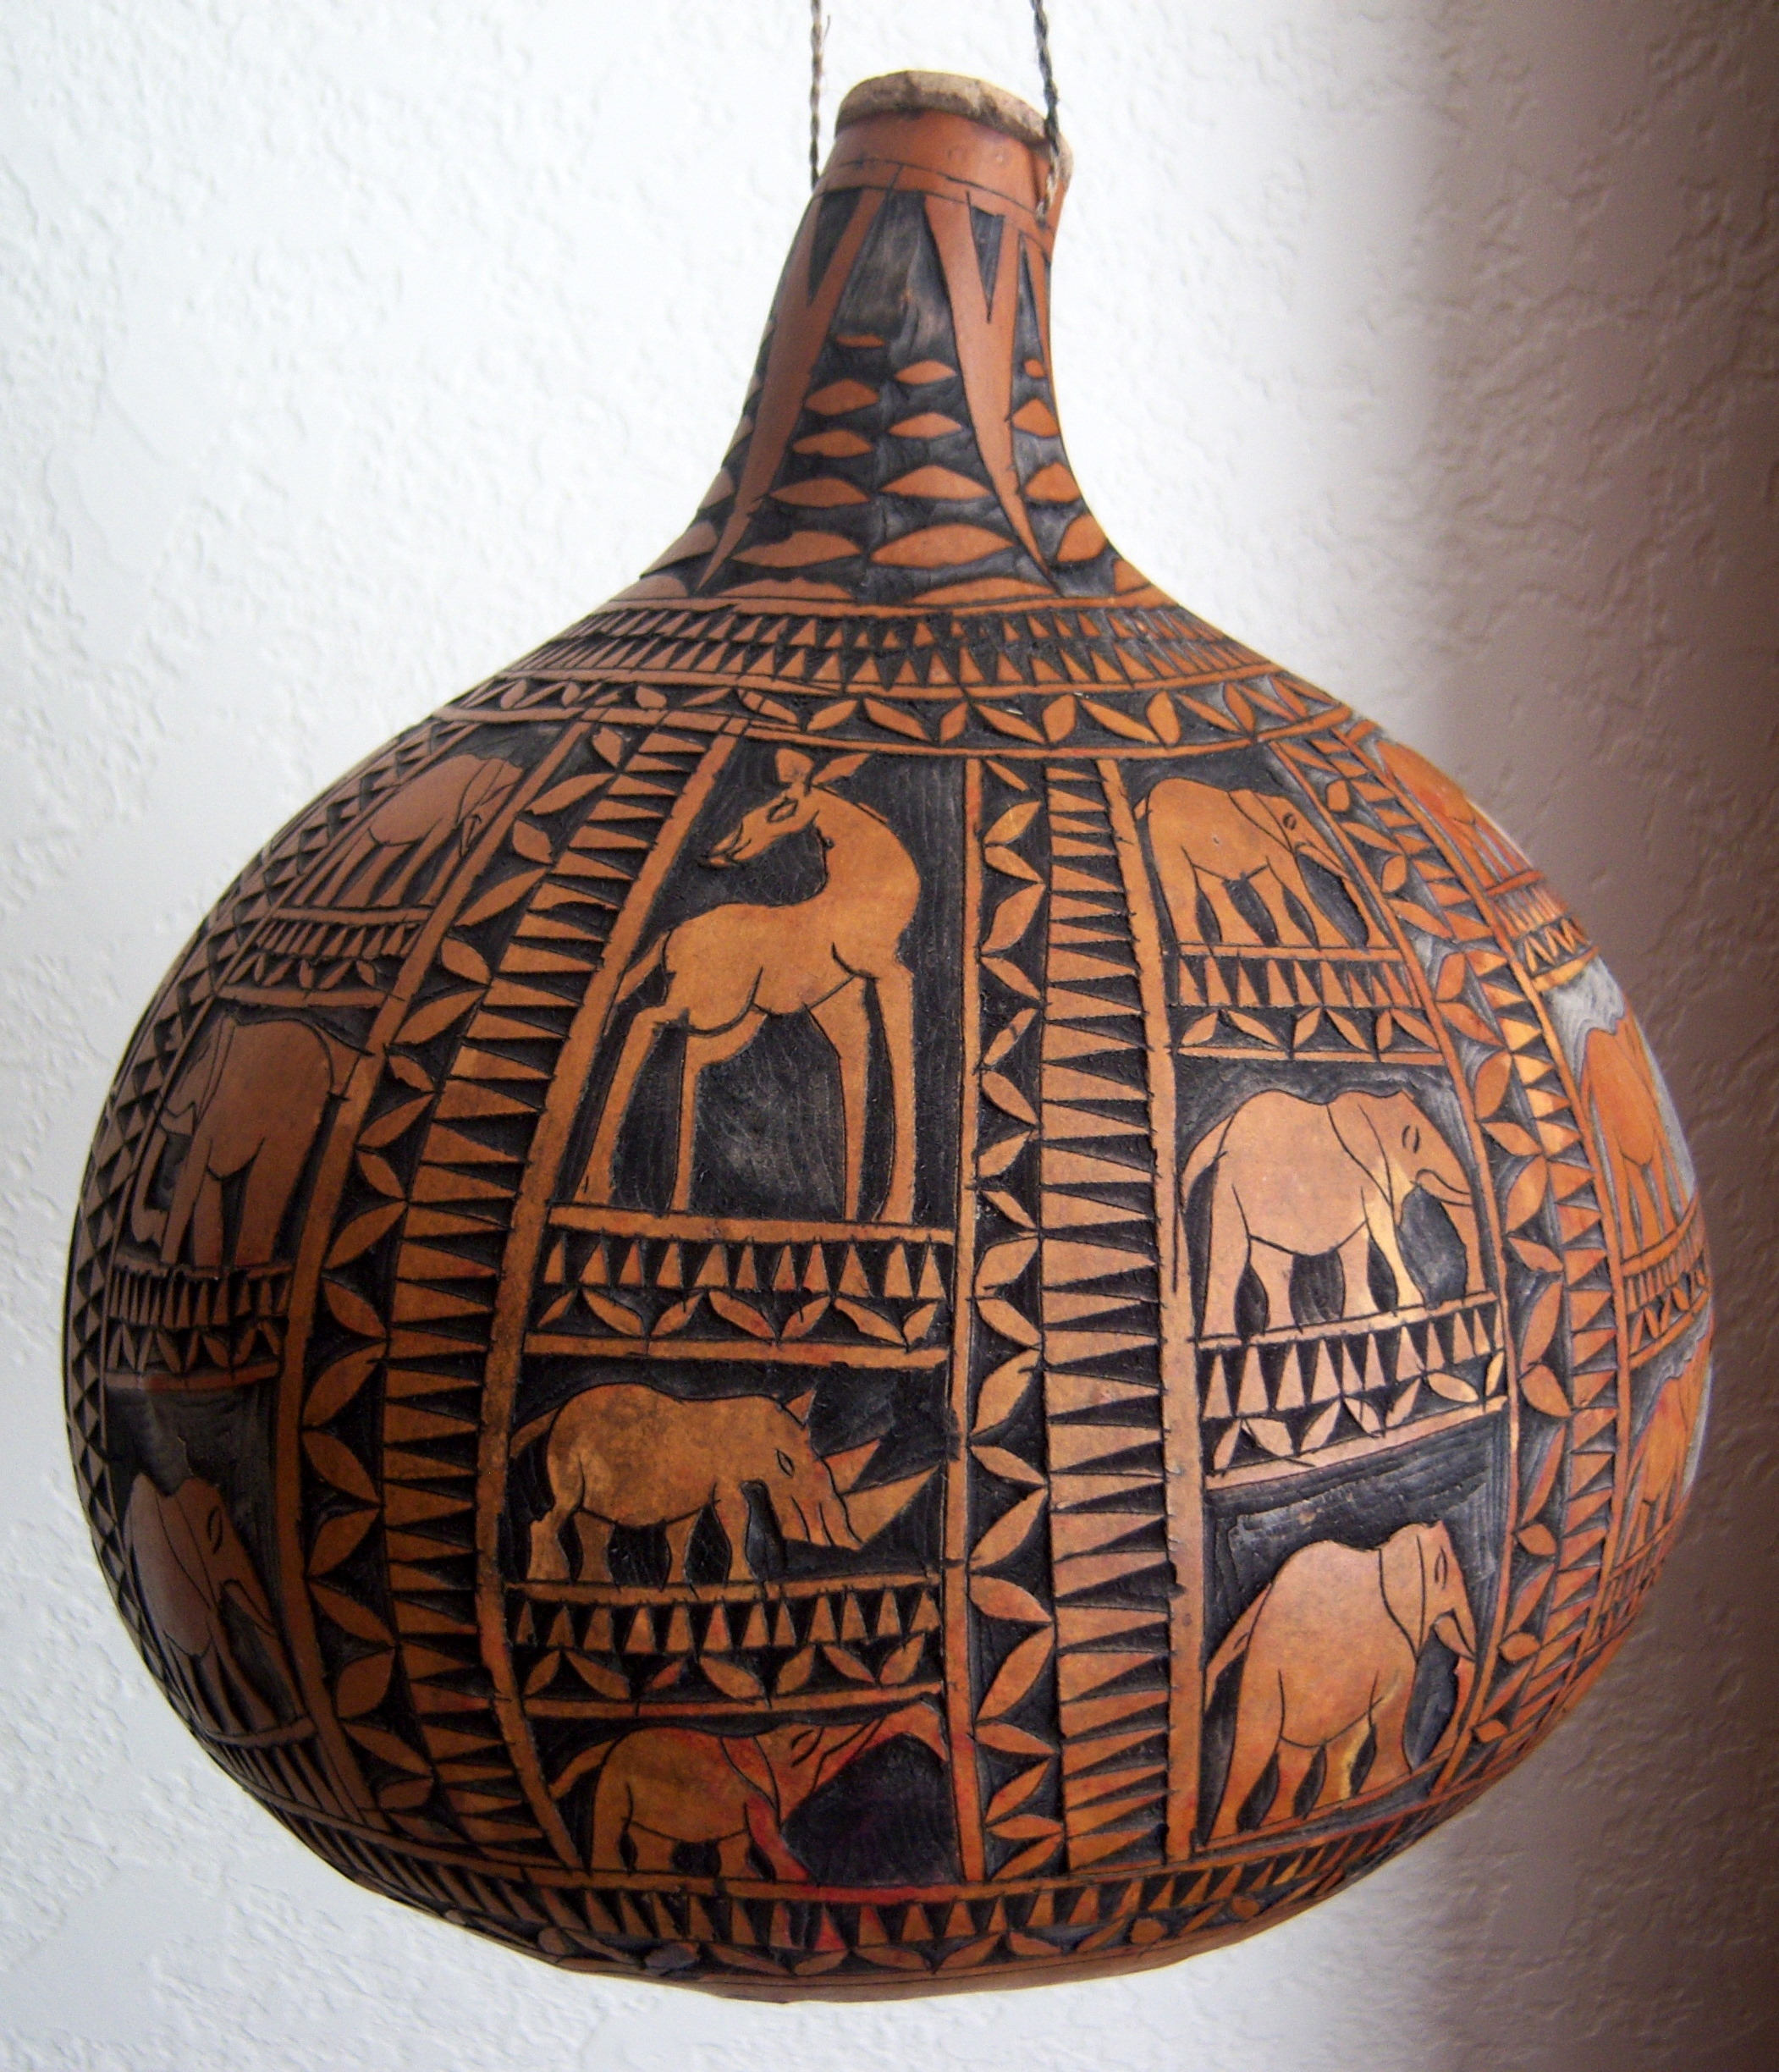 Carved Gourd Casa Mexicana Imports